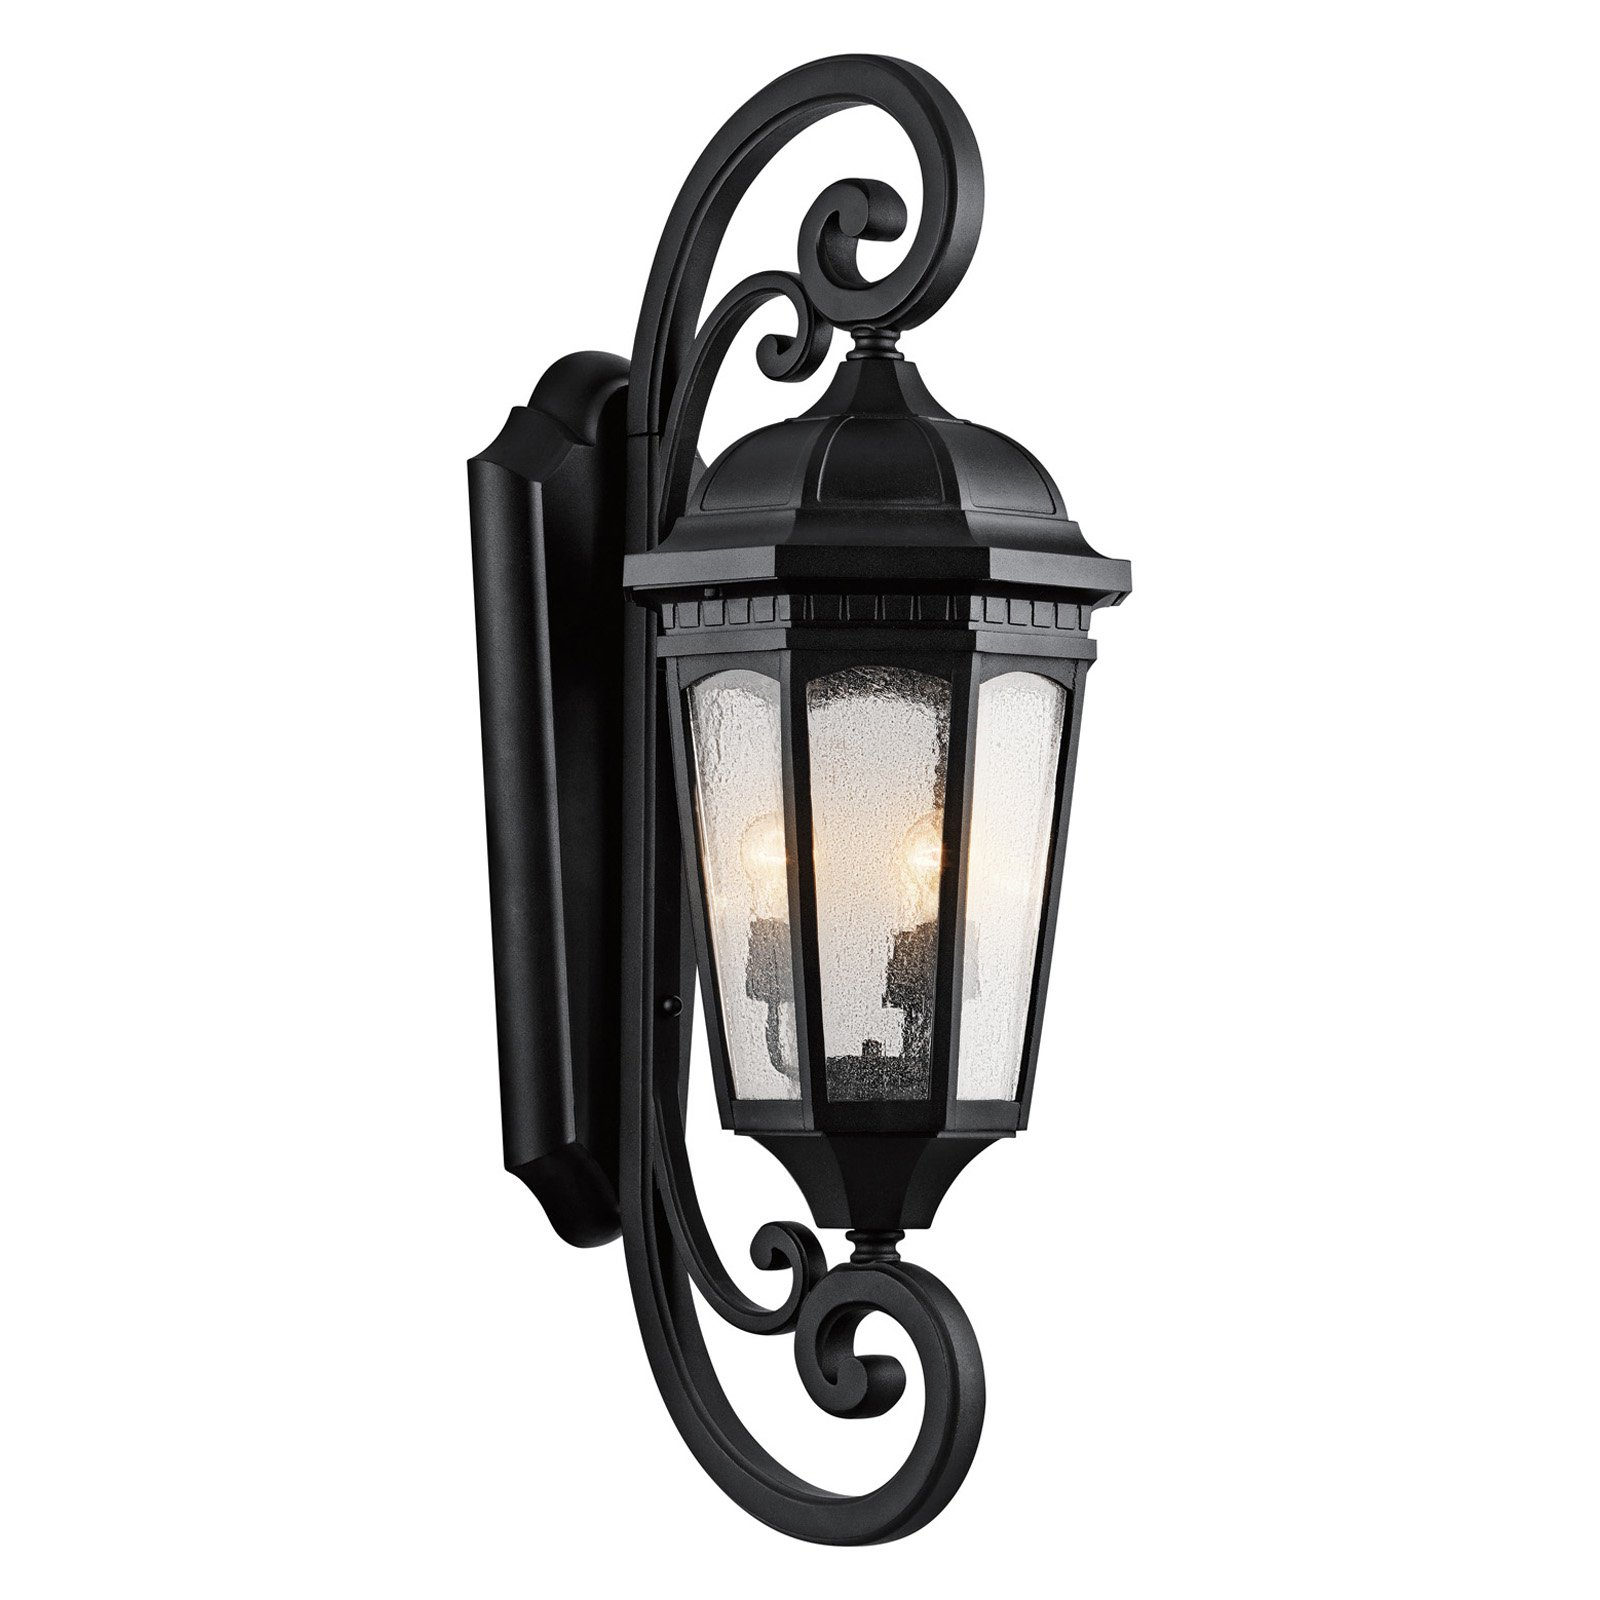 Kichler Courtyard 9060 Outdoor Wall Sconce by Kichler